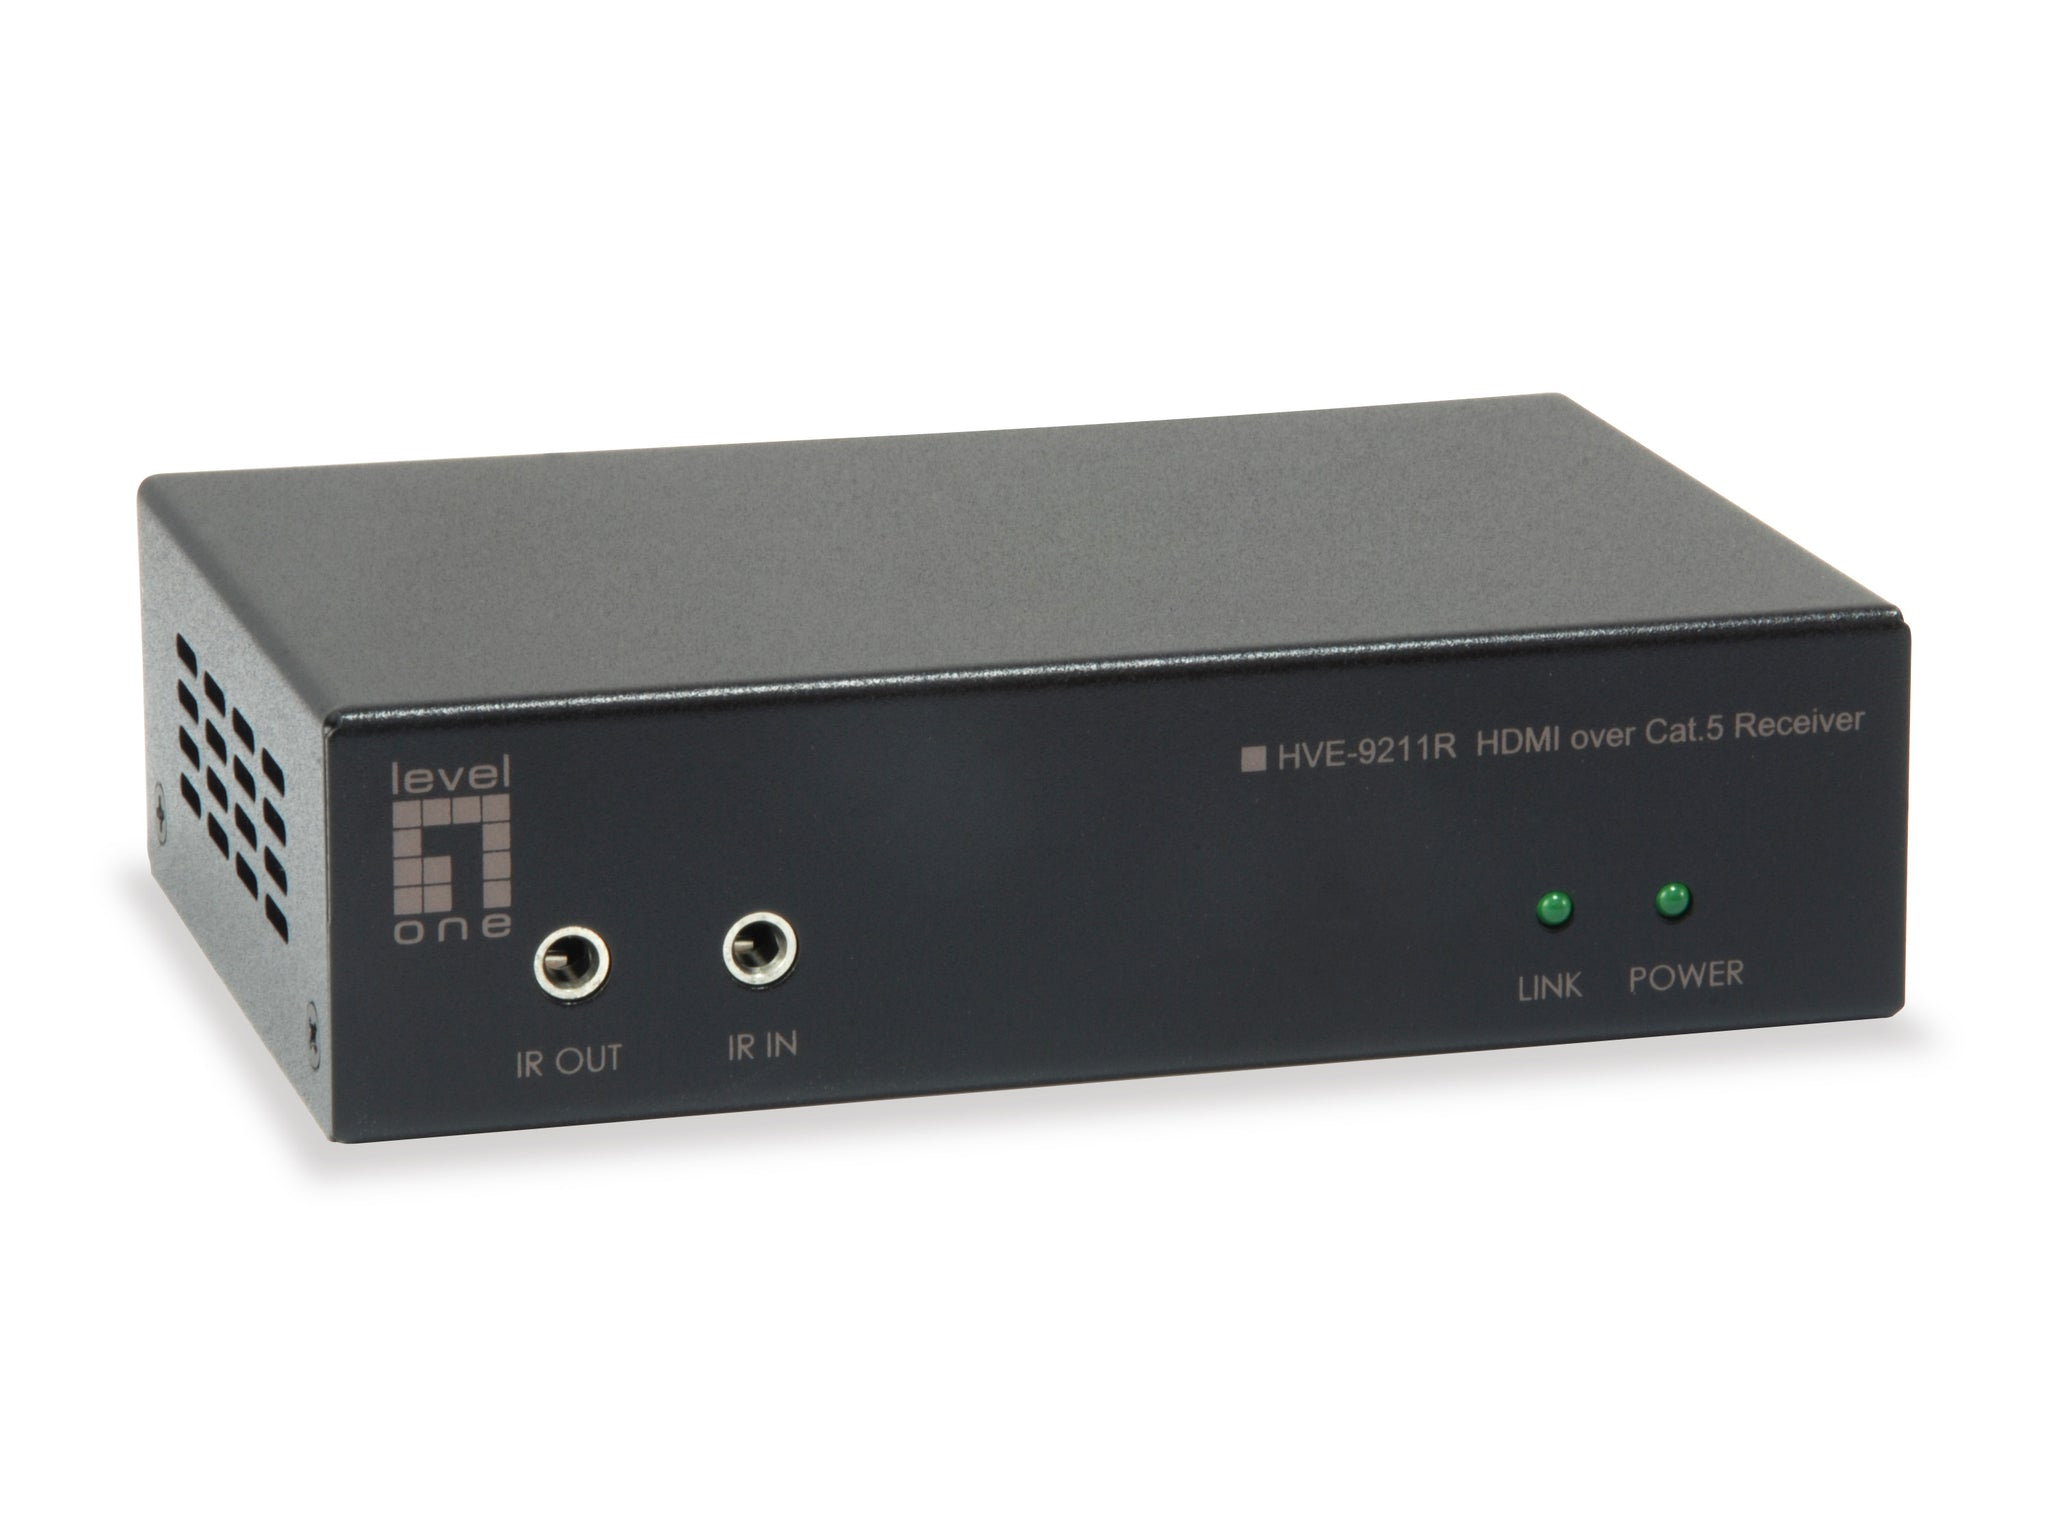 HVE-9211R HDMI over Cat.5 Receiver, HDBaseT, 100m